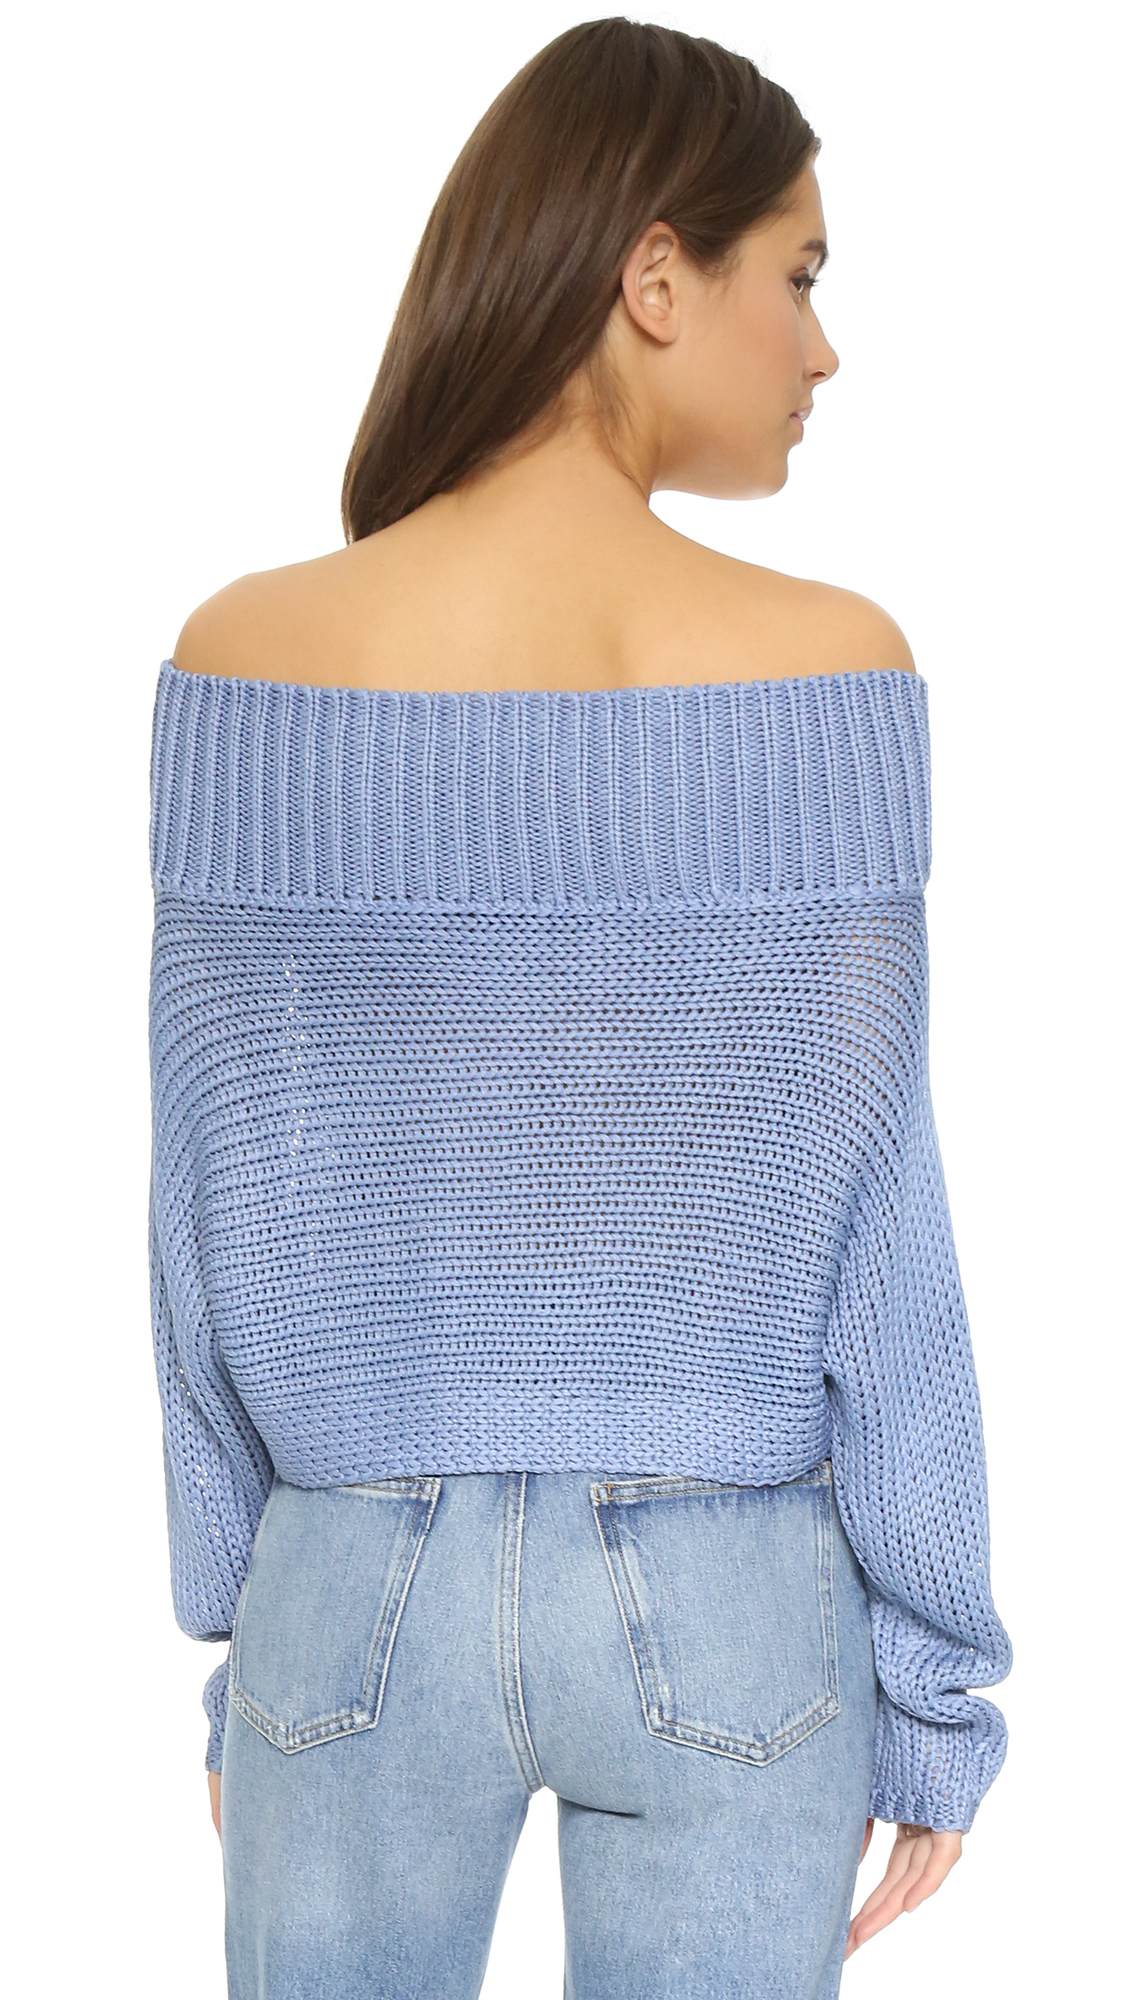 Tibi Oversized Cropped Pullover Sweater in Blue | Lyst